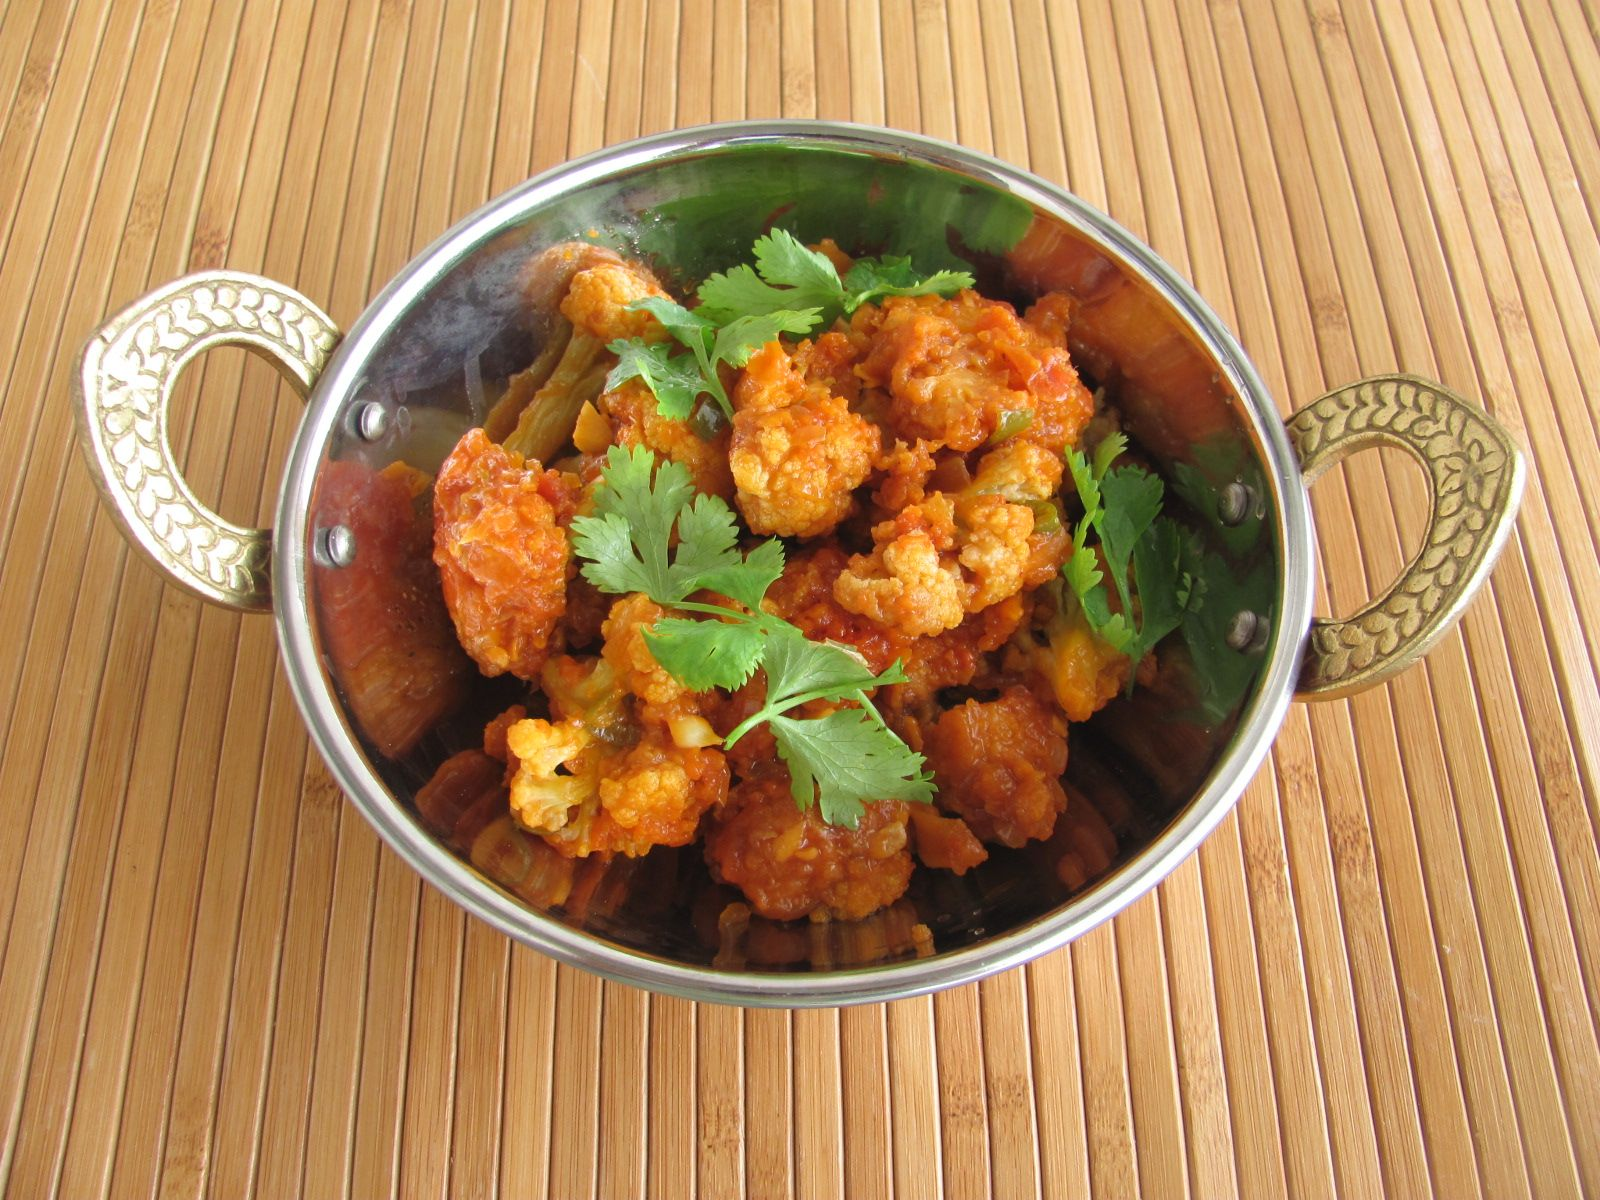 Gobi manchurian cauliflower manchurian httpsecretindianrecipe original indian recipes by home makers mothers grandmothers indian food lovers forumfinder Choice Image